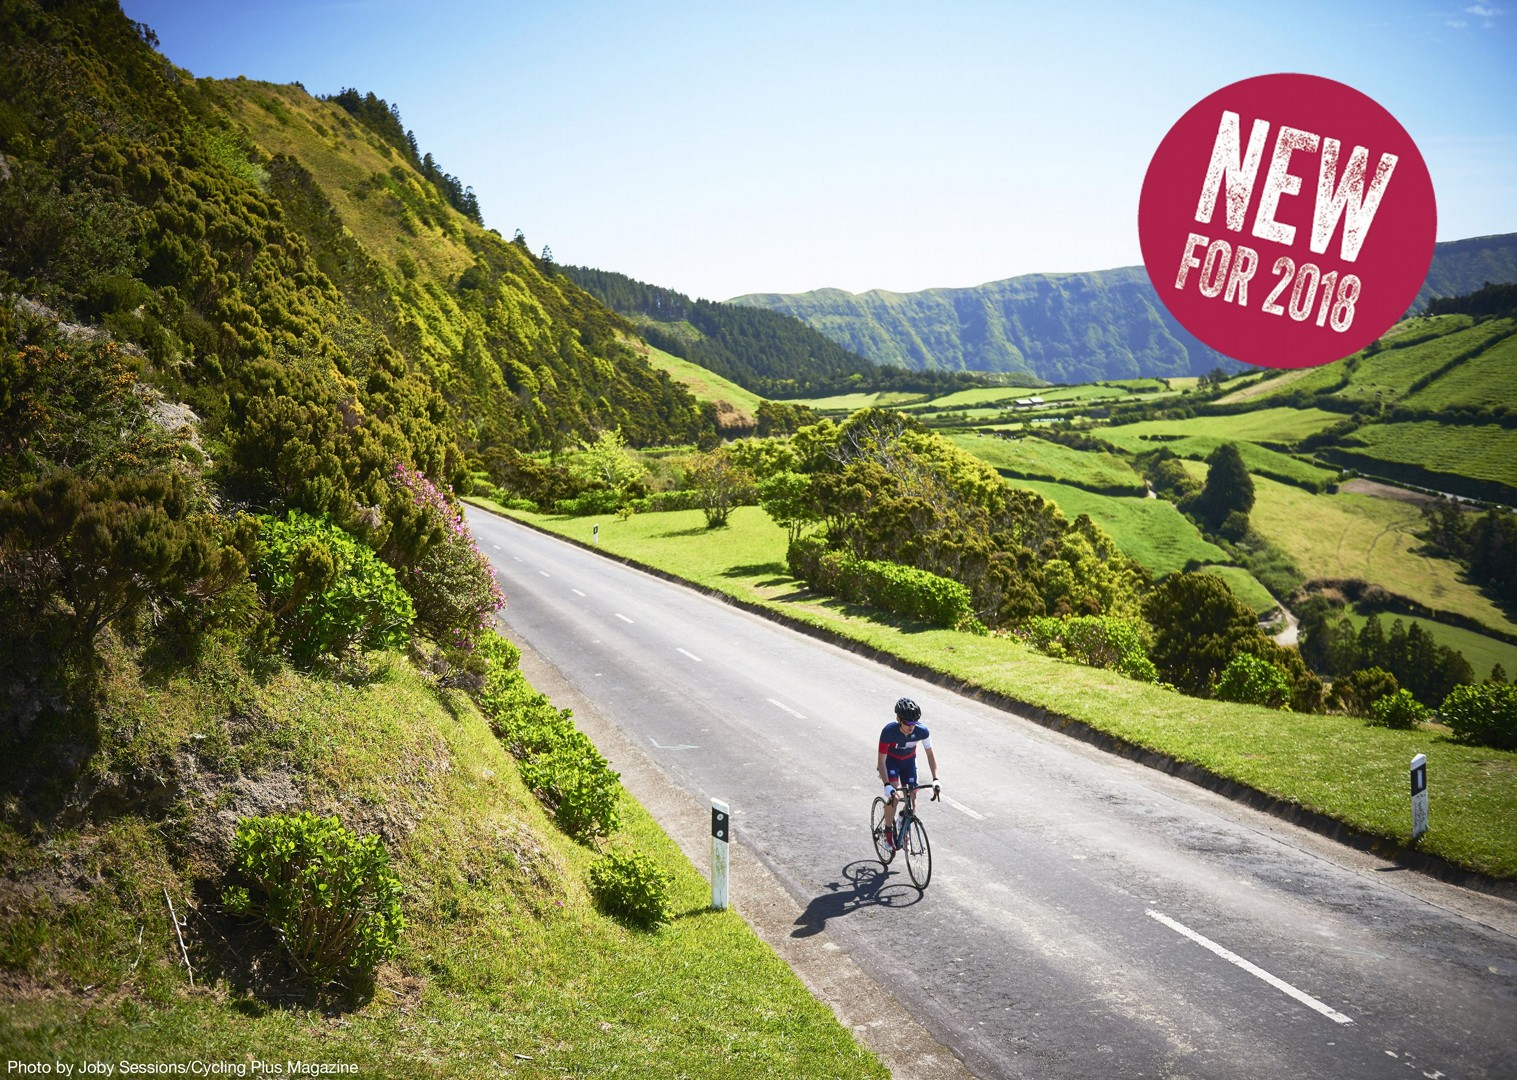 new-for-2018-guided-road-cycling-holiday-the-azores.jpg - The Azores - Lost World of Sao Miguel - Guided Road Cycling Holiday - Road Cycling